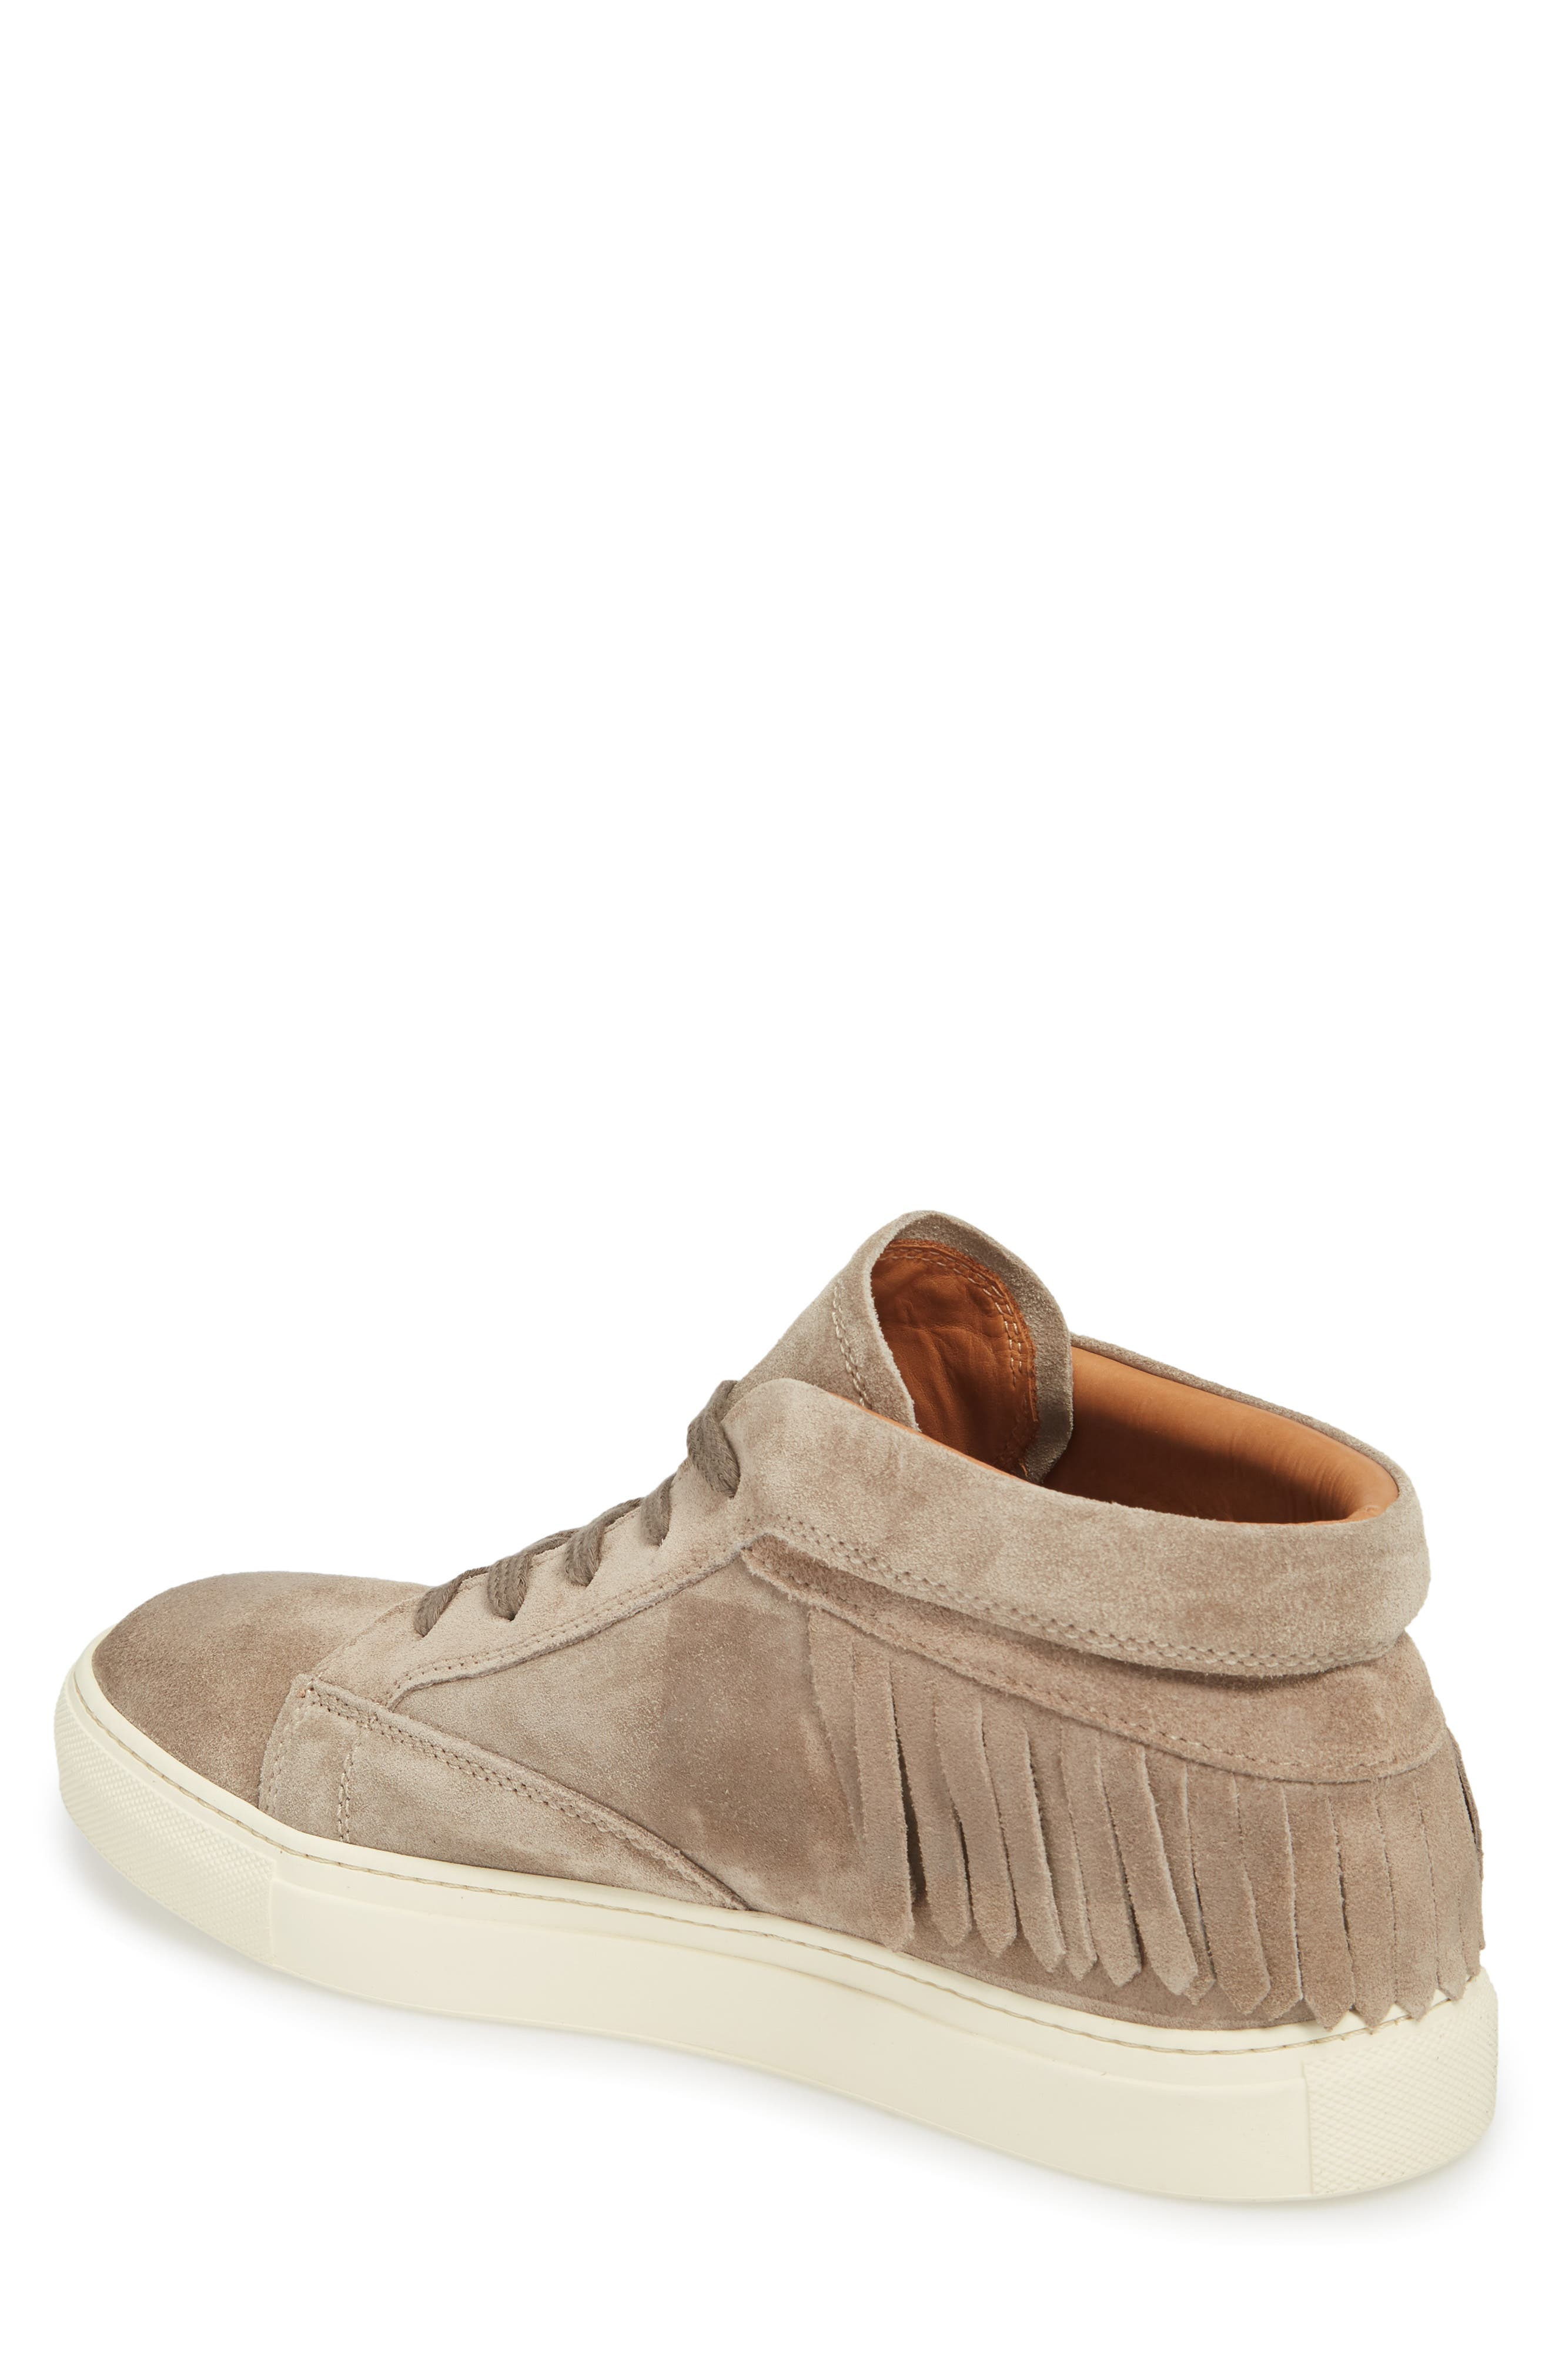 Reed Fringe Sneaker,                             Alternate thumbnail 2, color,                             259